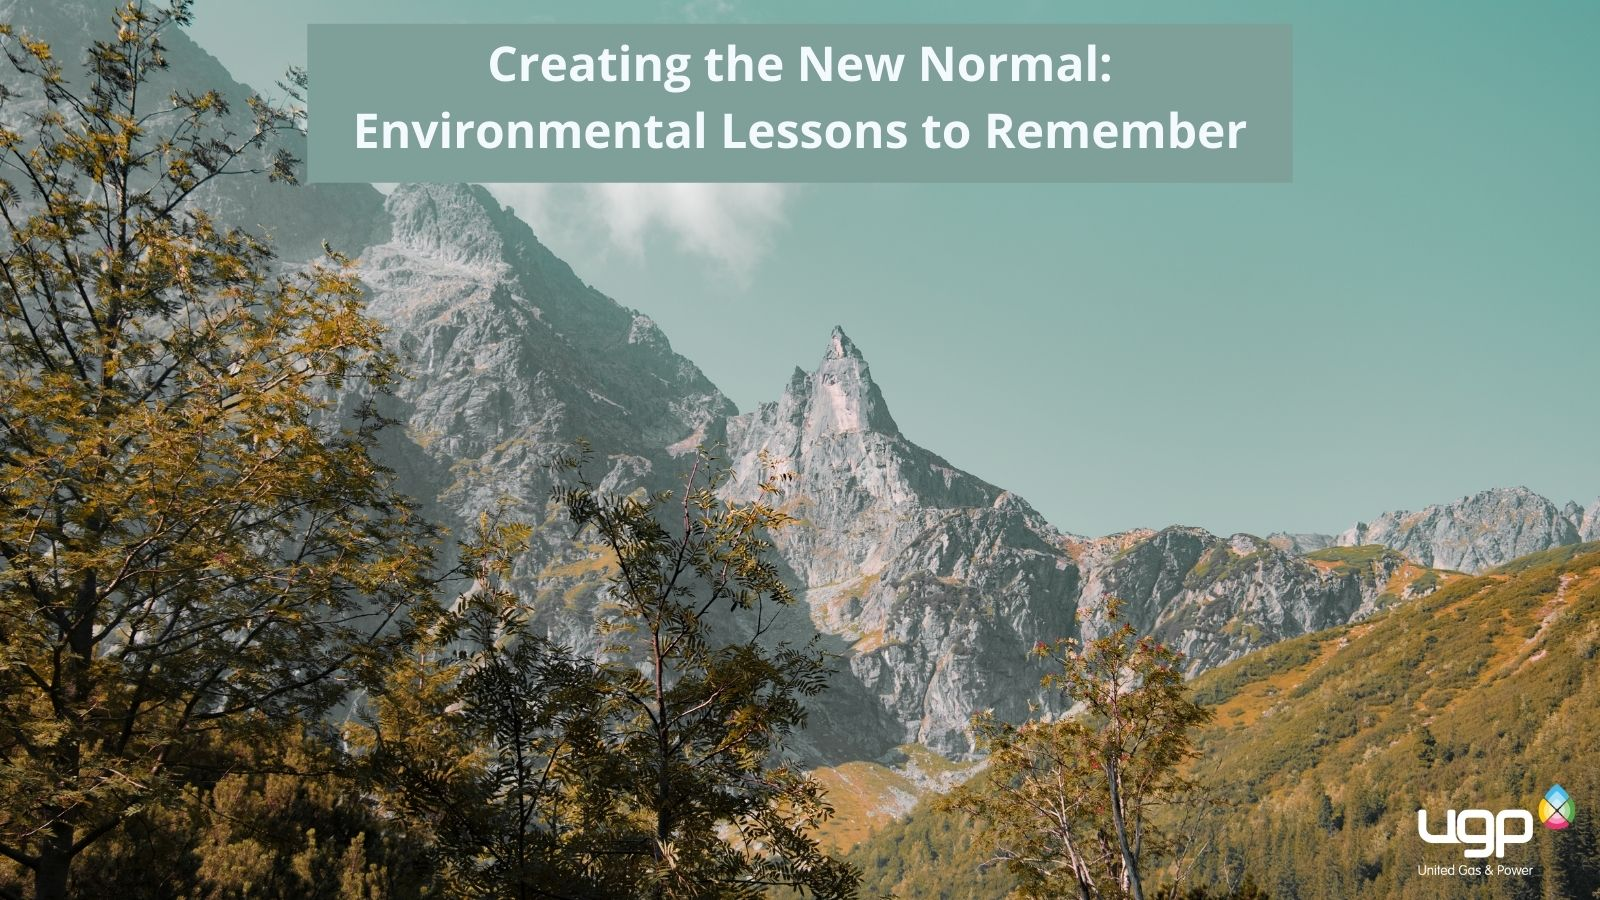 United Gas Power Creating the New Normal: Environmental Lessons to Remember